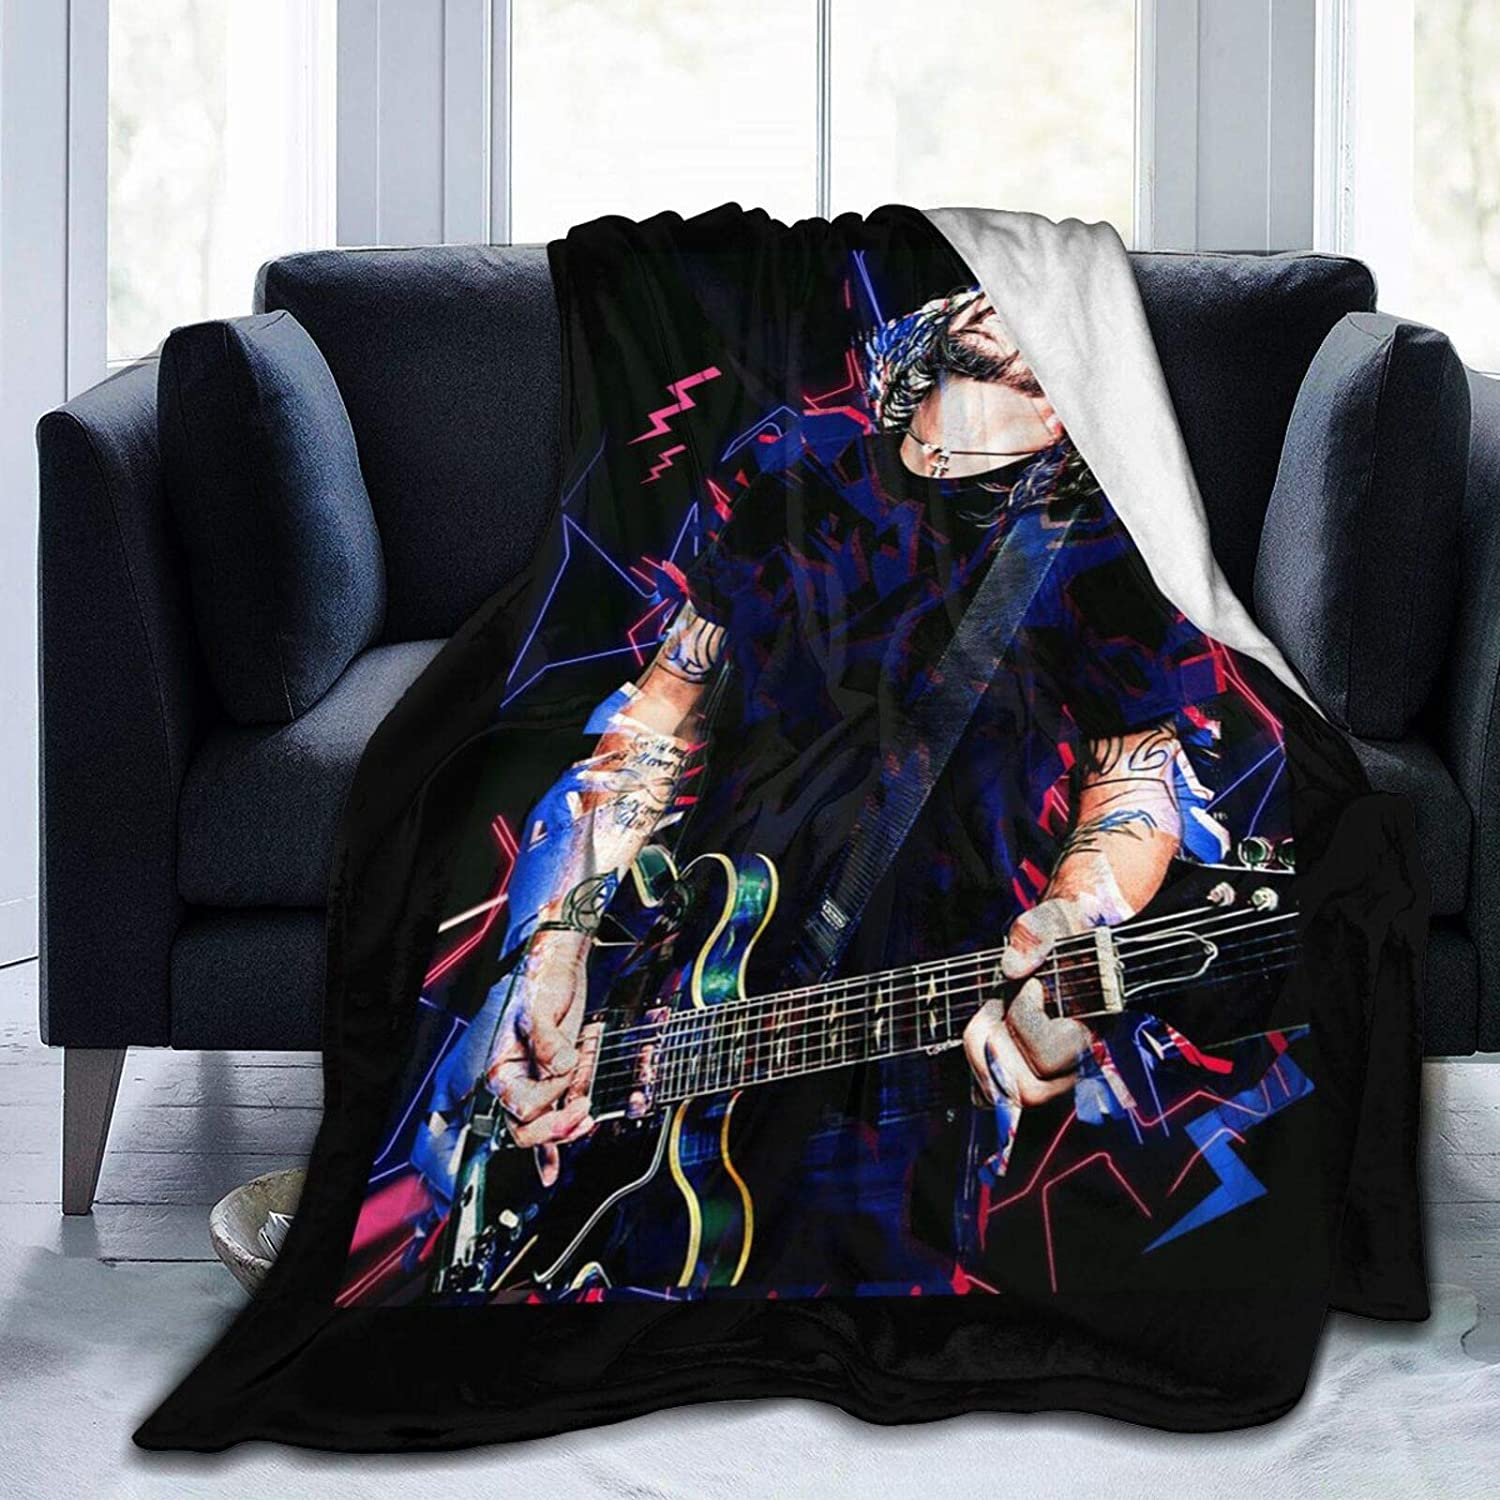 Fzqdd Ultra Soft Flannel Fleece Bed Blanket Dave Ranking Award-winning store TOP20 Bla Grohl Throw